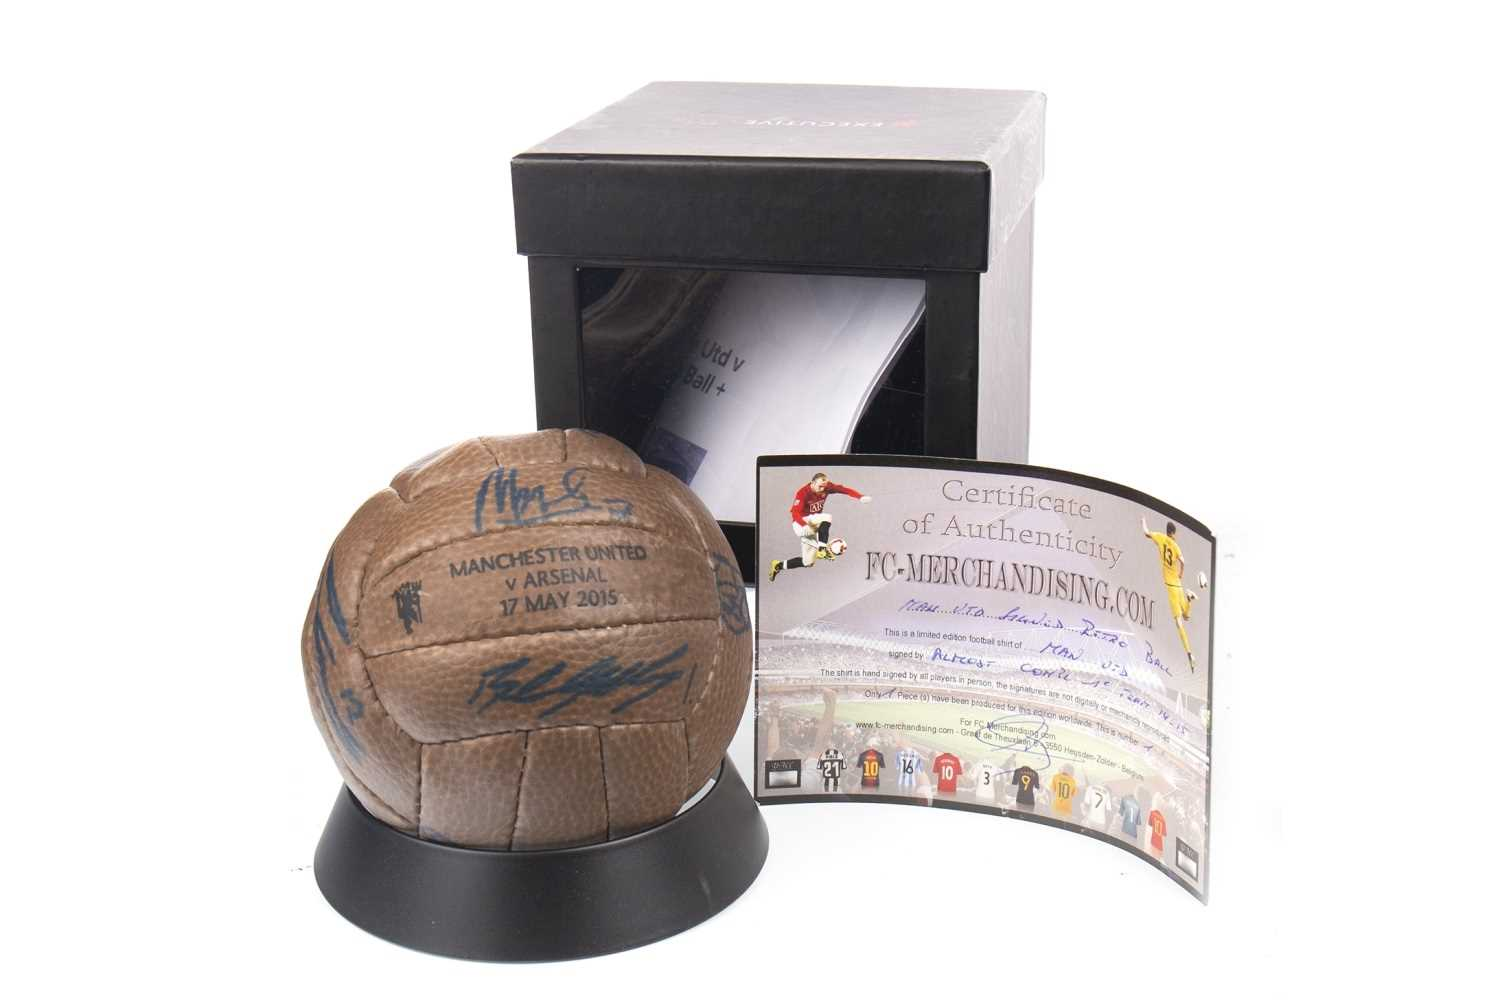 Lot 1849-A SIGNED MANCHESTER UNITED BALL